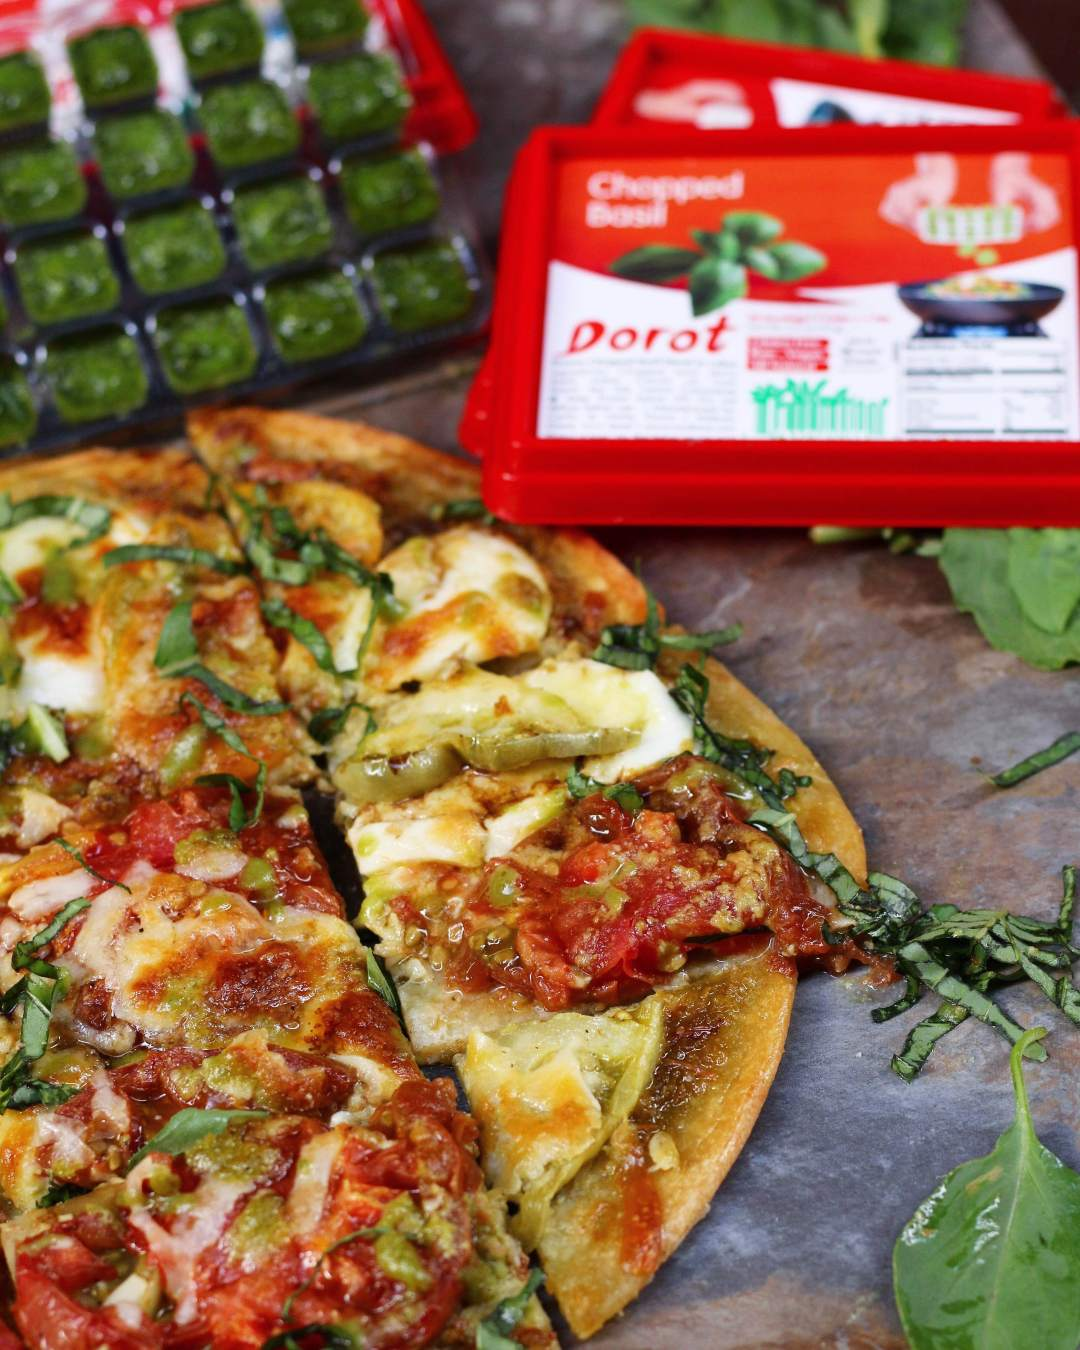 Heirloom Tomato, Mozzarella, and Pesto Flatbread made with Dorot fresh chopped basil and garlic!